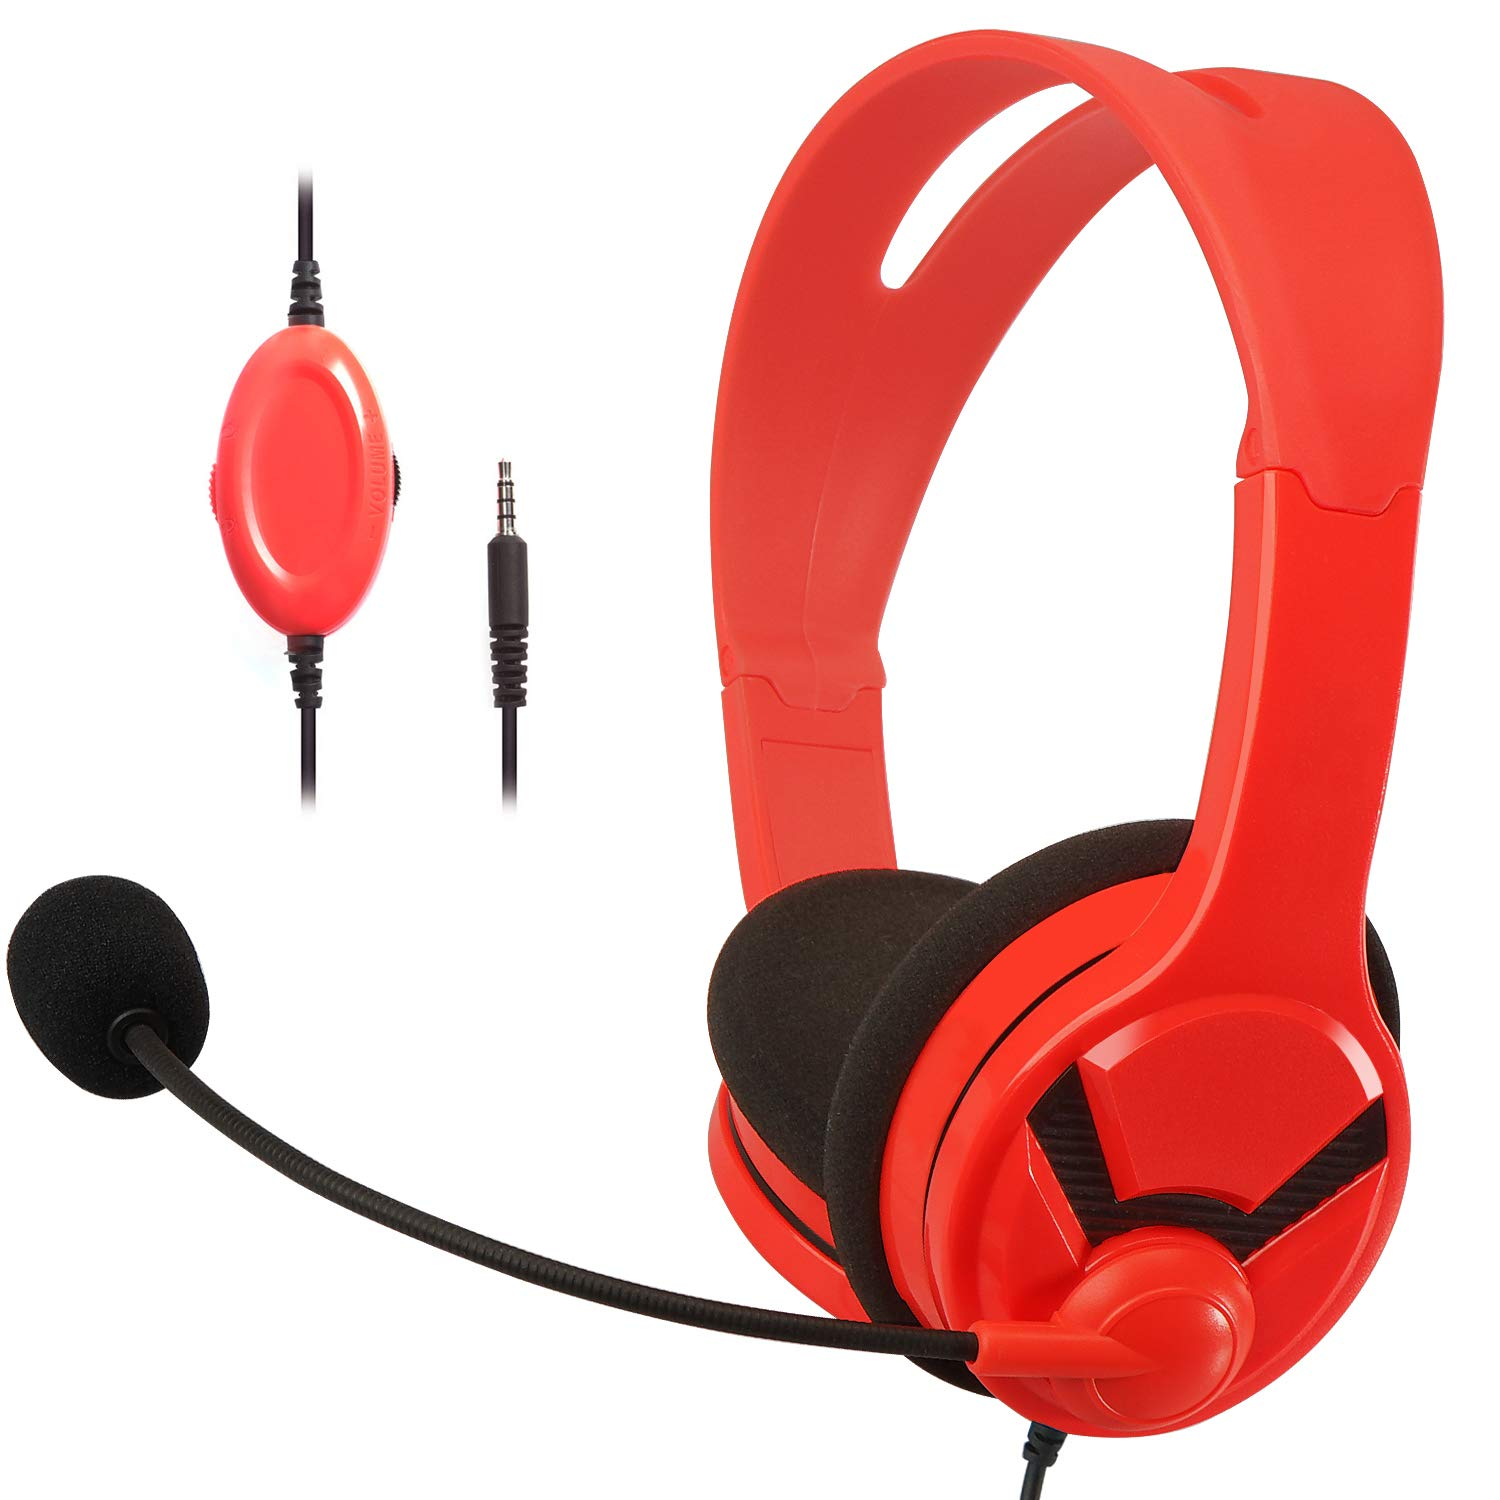 AmazonBasics Gaming Headset For Nintendo Switch, Xbox One, PlayStation 4 and PC - Red